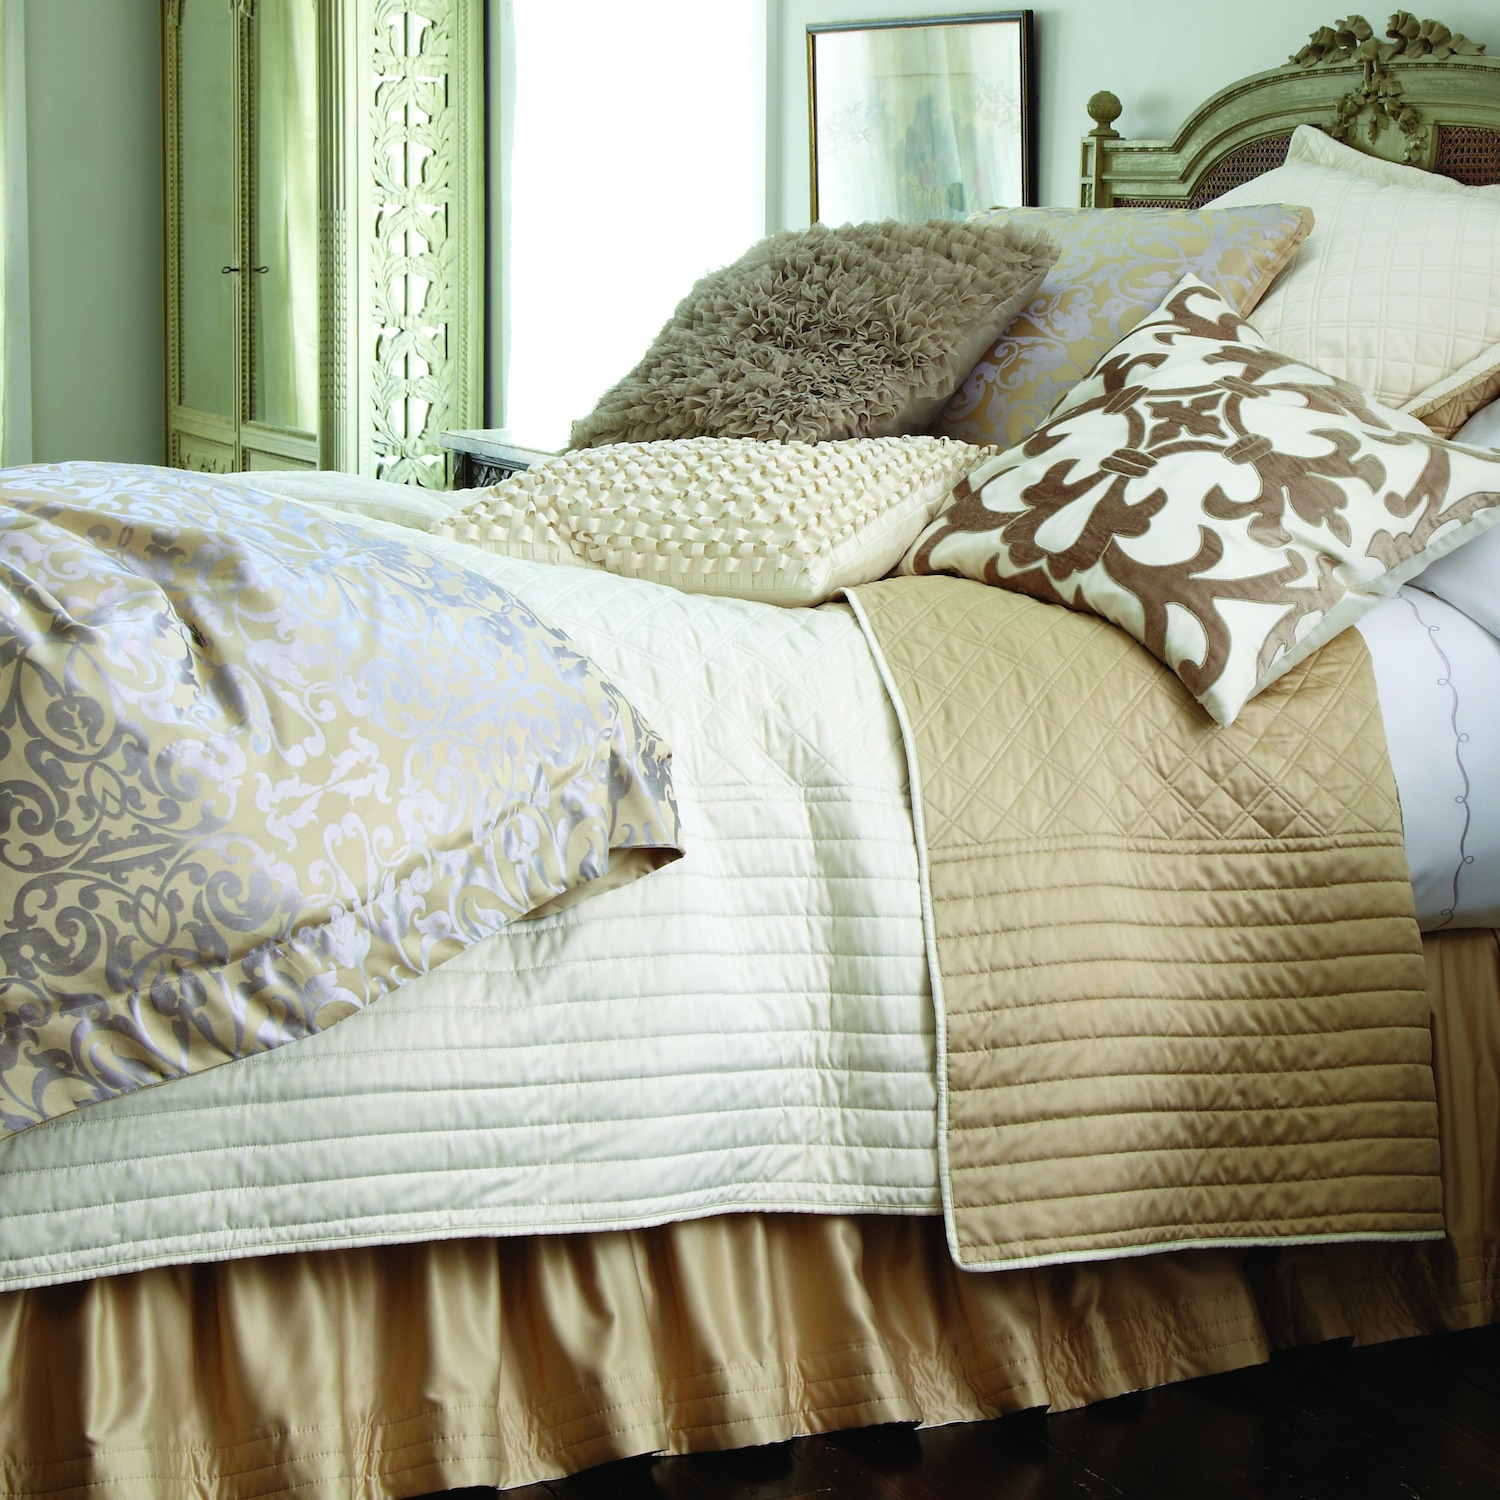 Attractive coverlets for fantastic bedroom ideas with matelasse coverlet